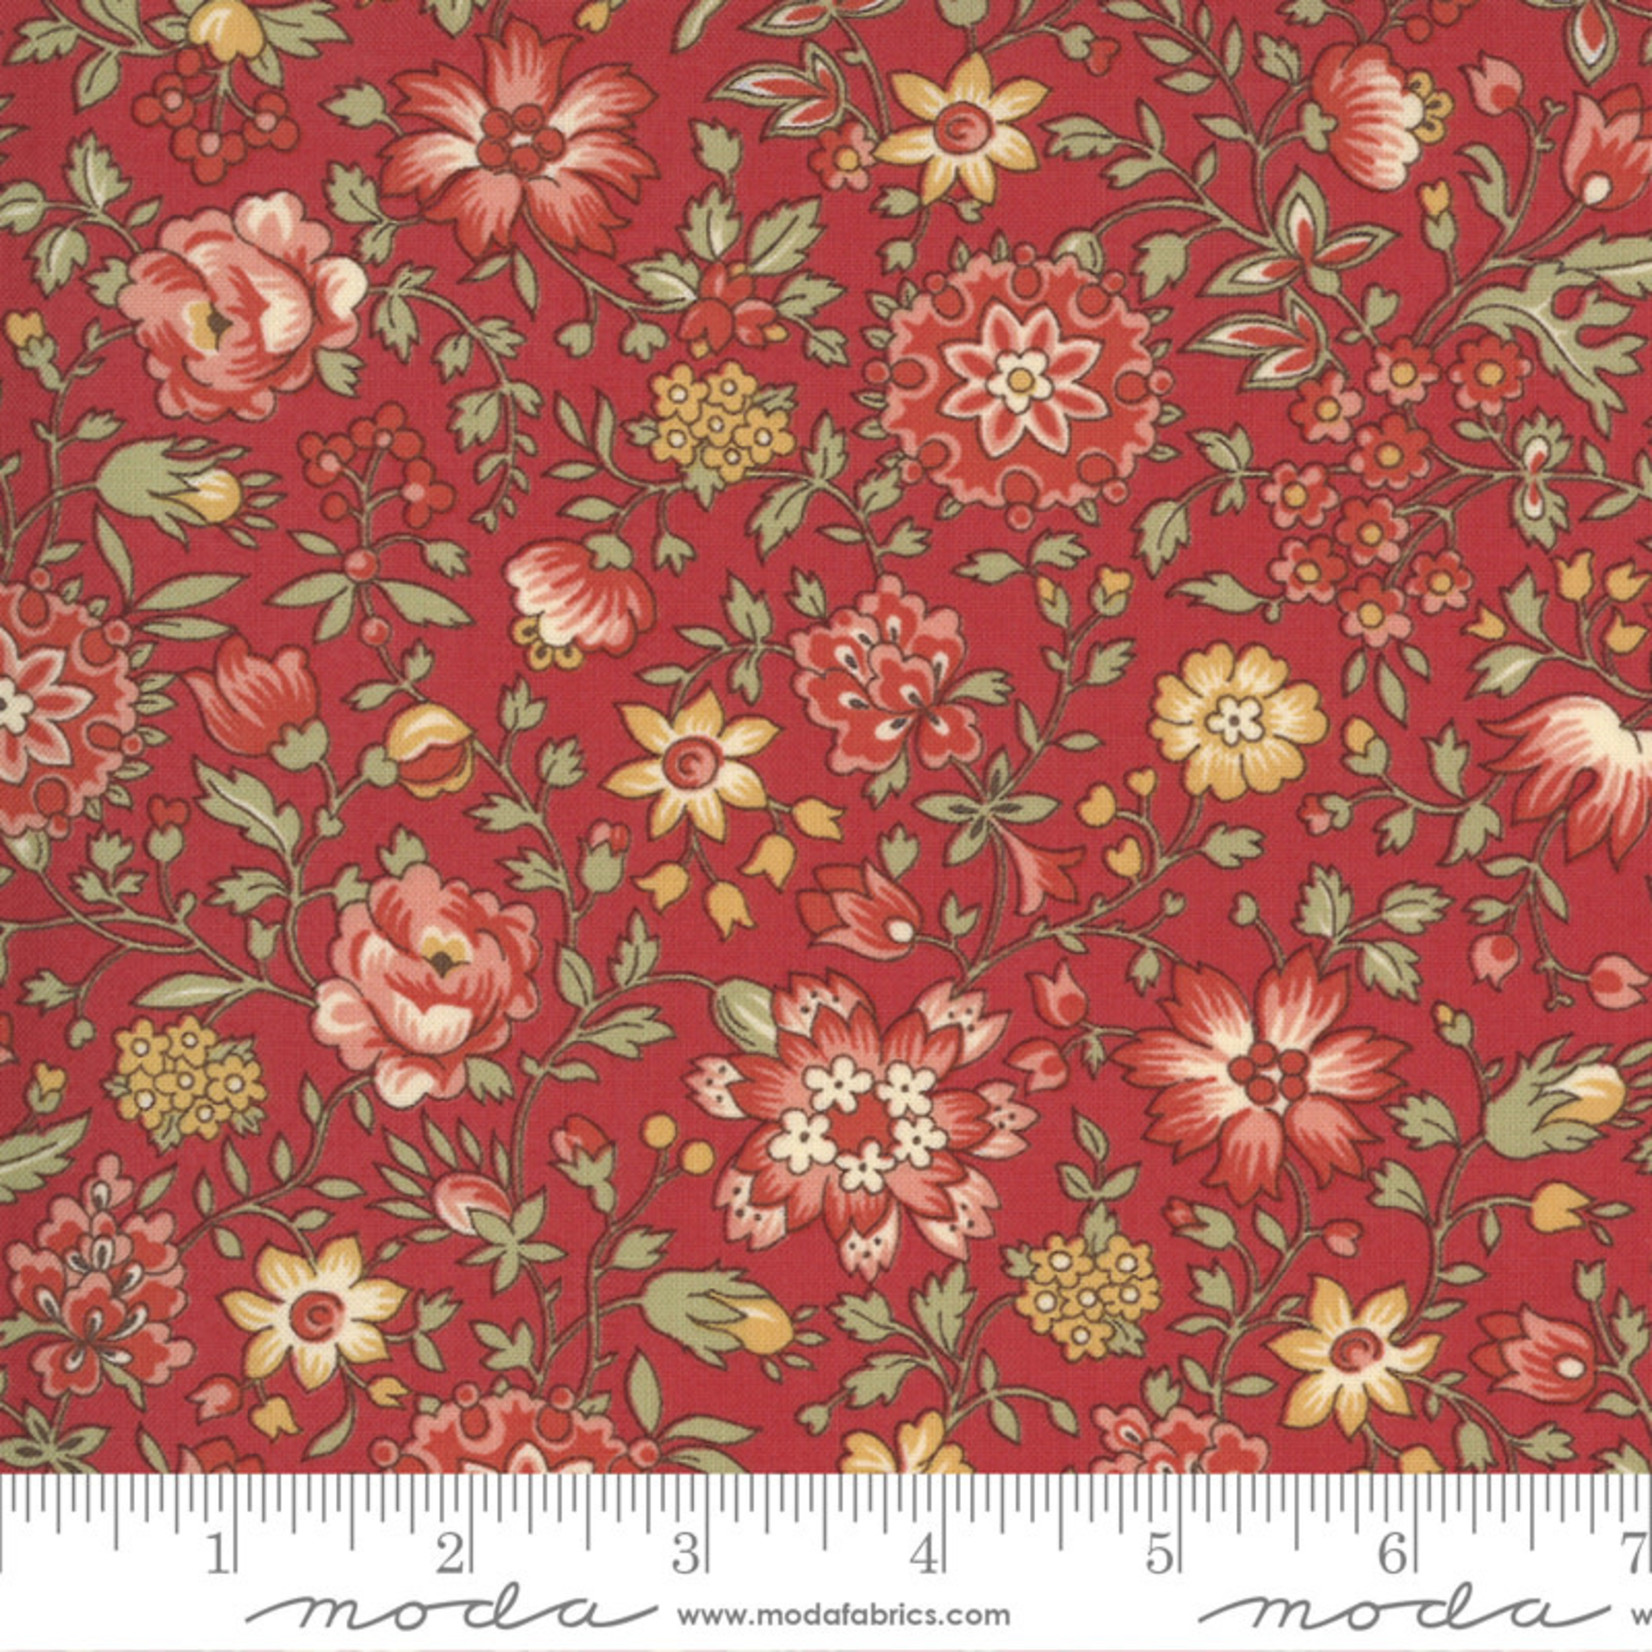 FRENCH GENERAL Jardins De Fleurs, Giverny, Rouge 13894-12 $0.20 per cm or $20/m